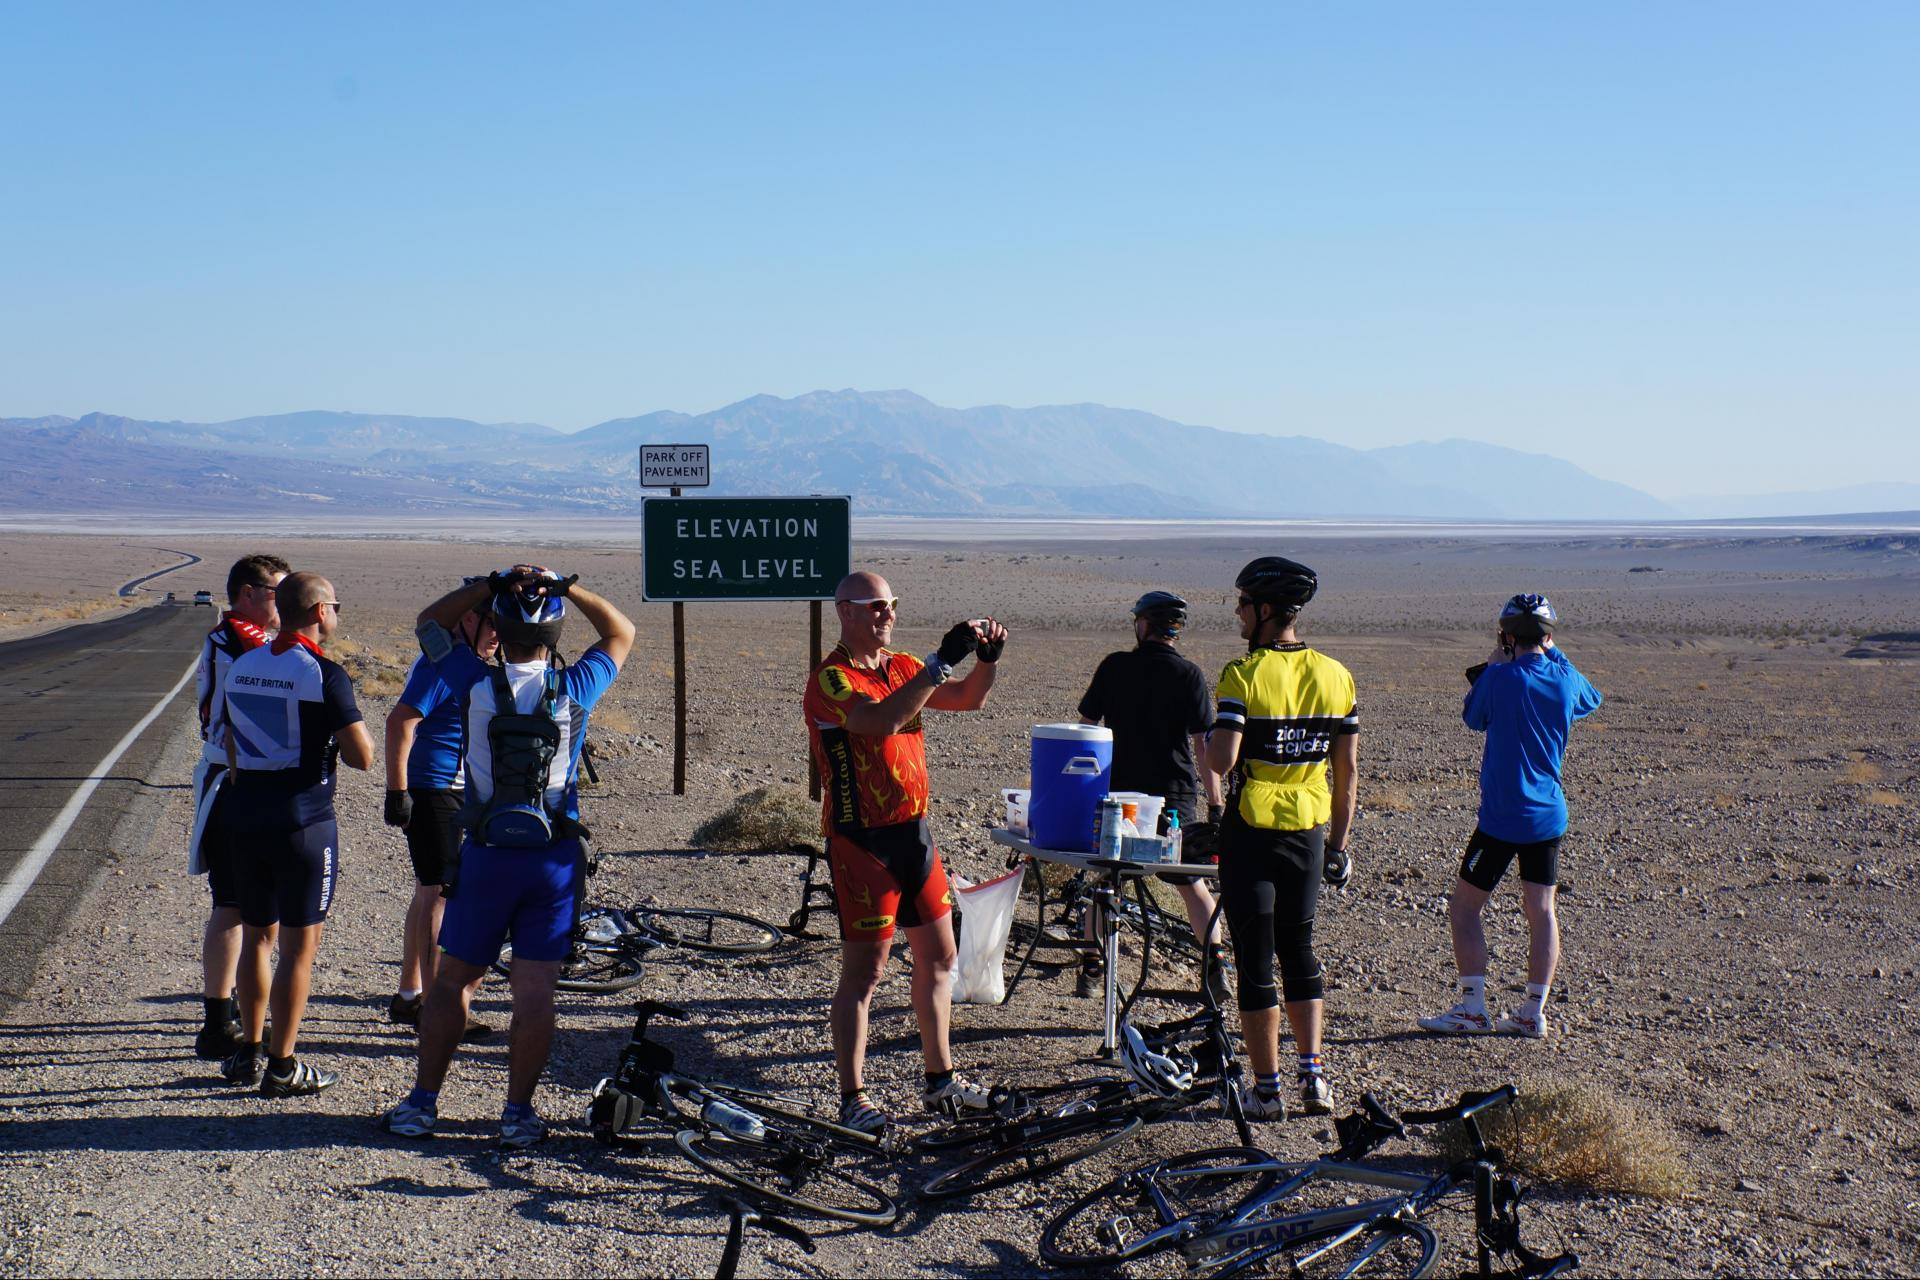 Cycling tour in Death Valley National Park